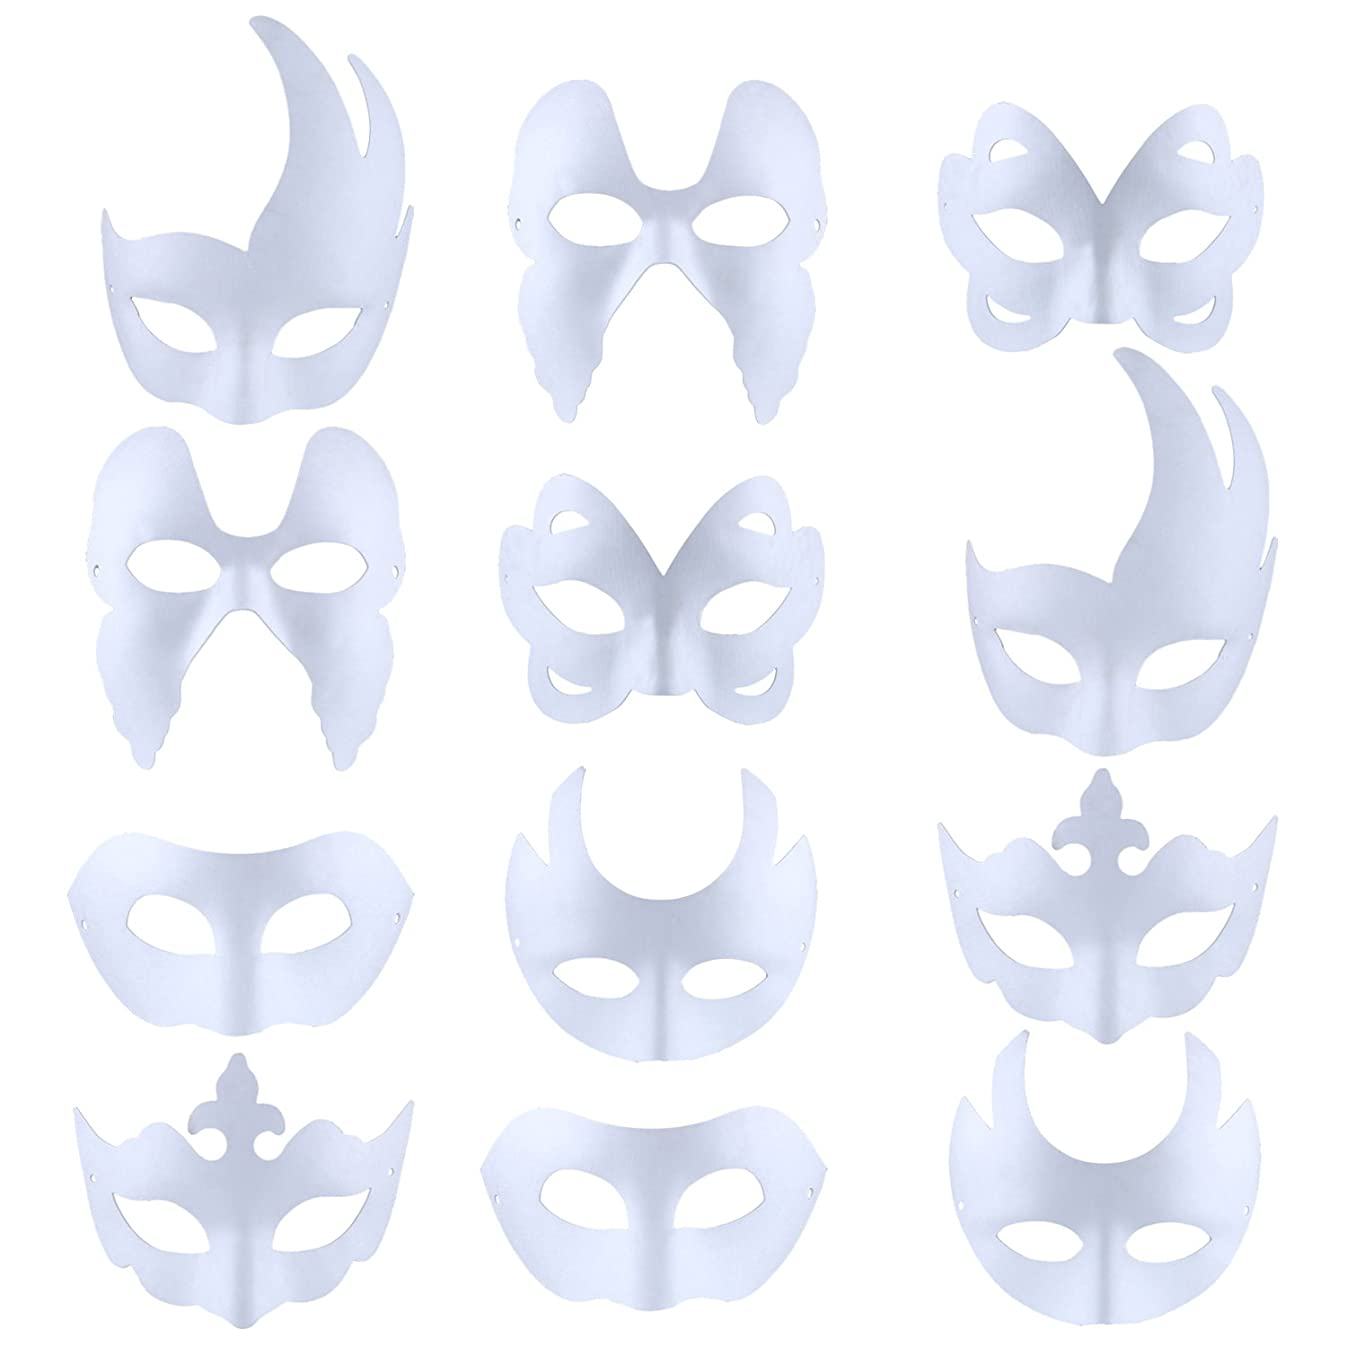 Funpa 12PCS Paper Face Mask Costume Mask DIY Cosplay Mask Half Dance Mask for Party